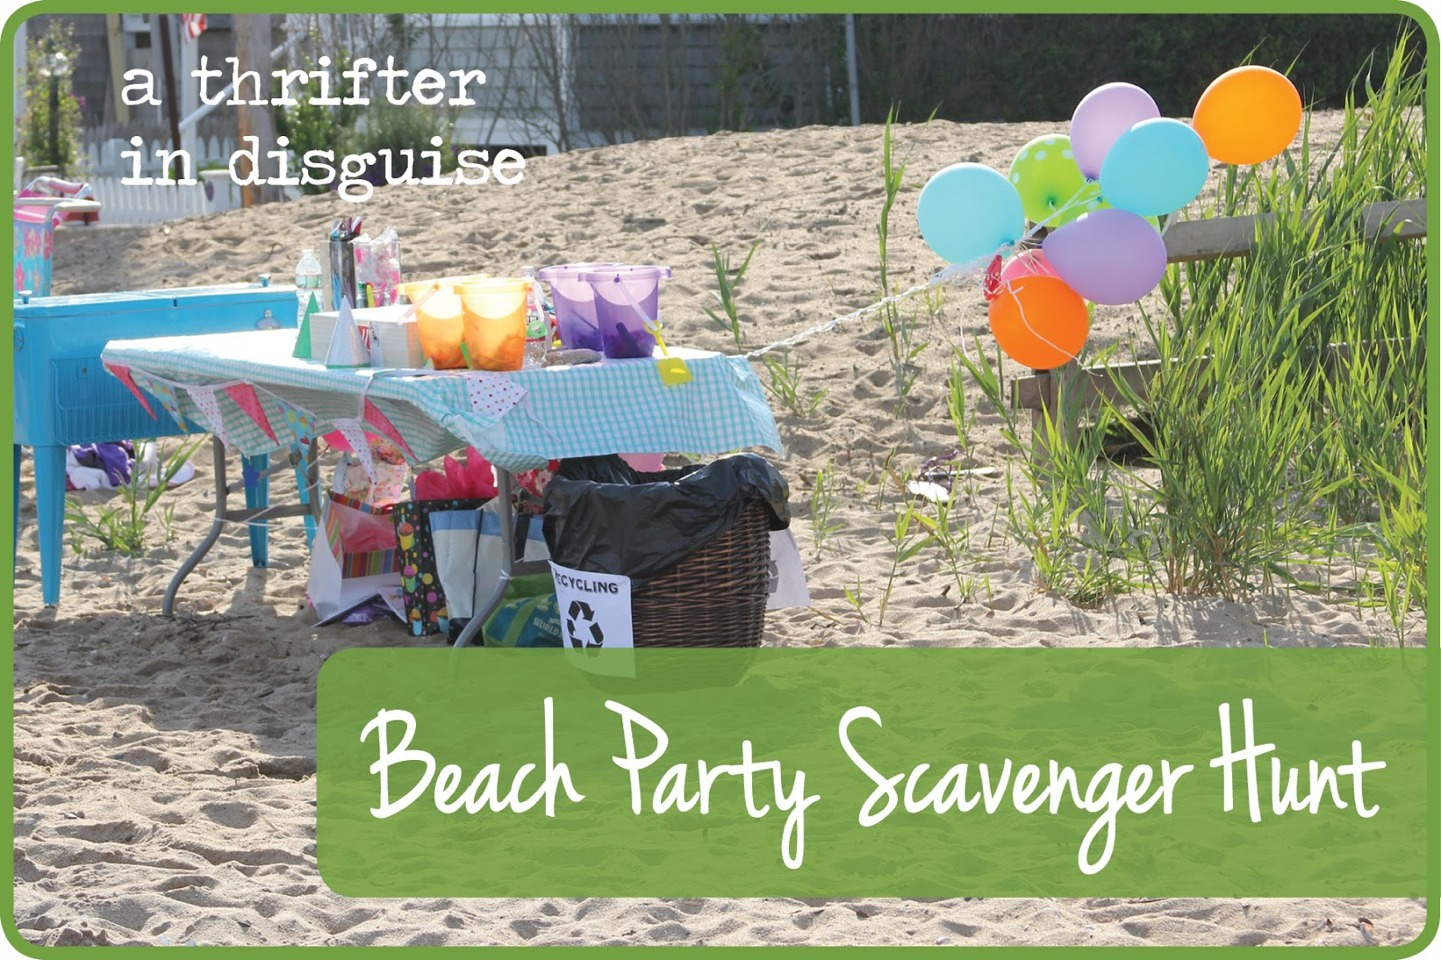 Have a scavenger hunt ... Better yet go to the  beach and have people find the coolest items they can, then all join up again and look at the treasures you've found